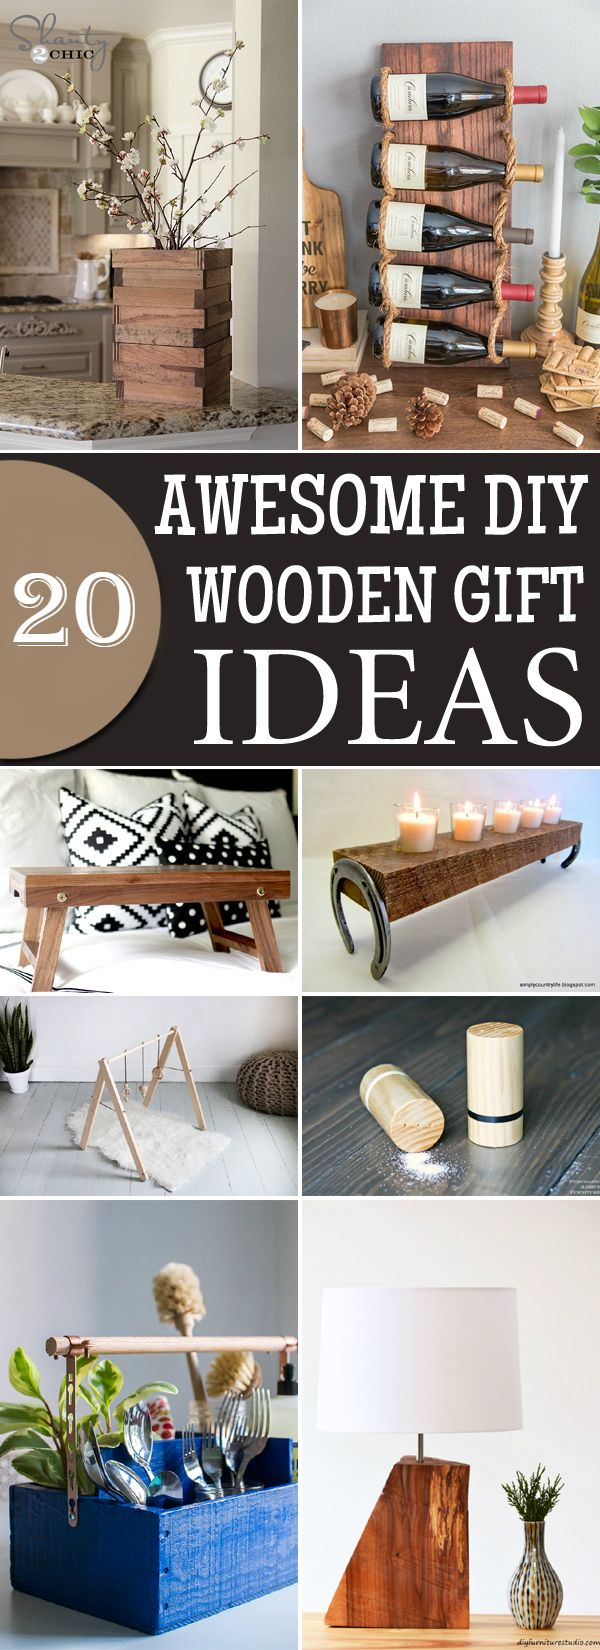 20 Awesome Diy Wooden Gift Ideas Wooden Look Wooden Diy Diy Wooden Projects Wooden Gifts